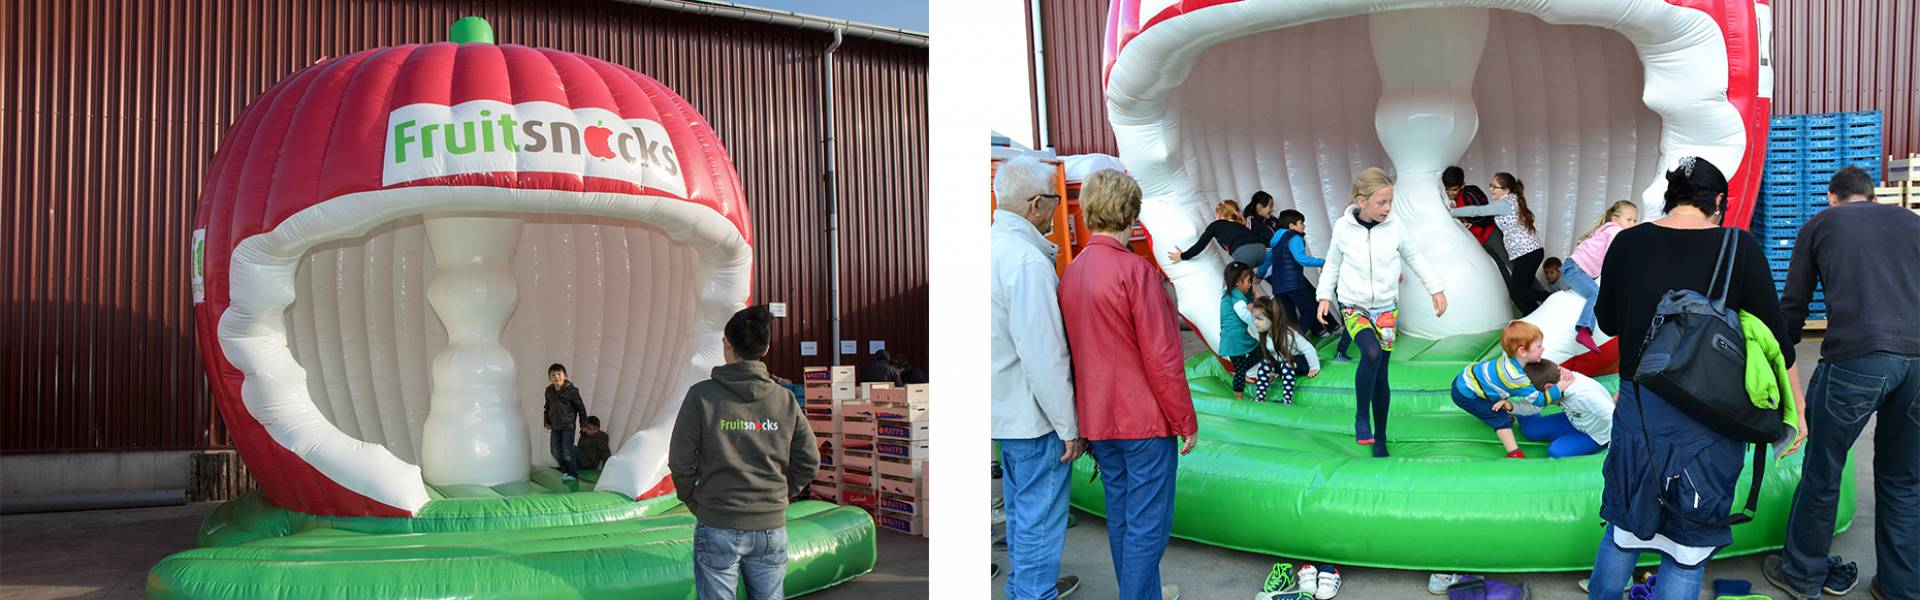 Giant inflatables are X-Treme Creations' core business.  Fruitsnacks X-Treme Creations